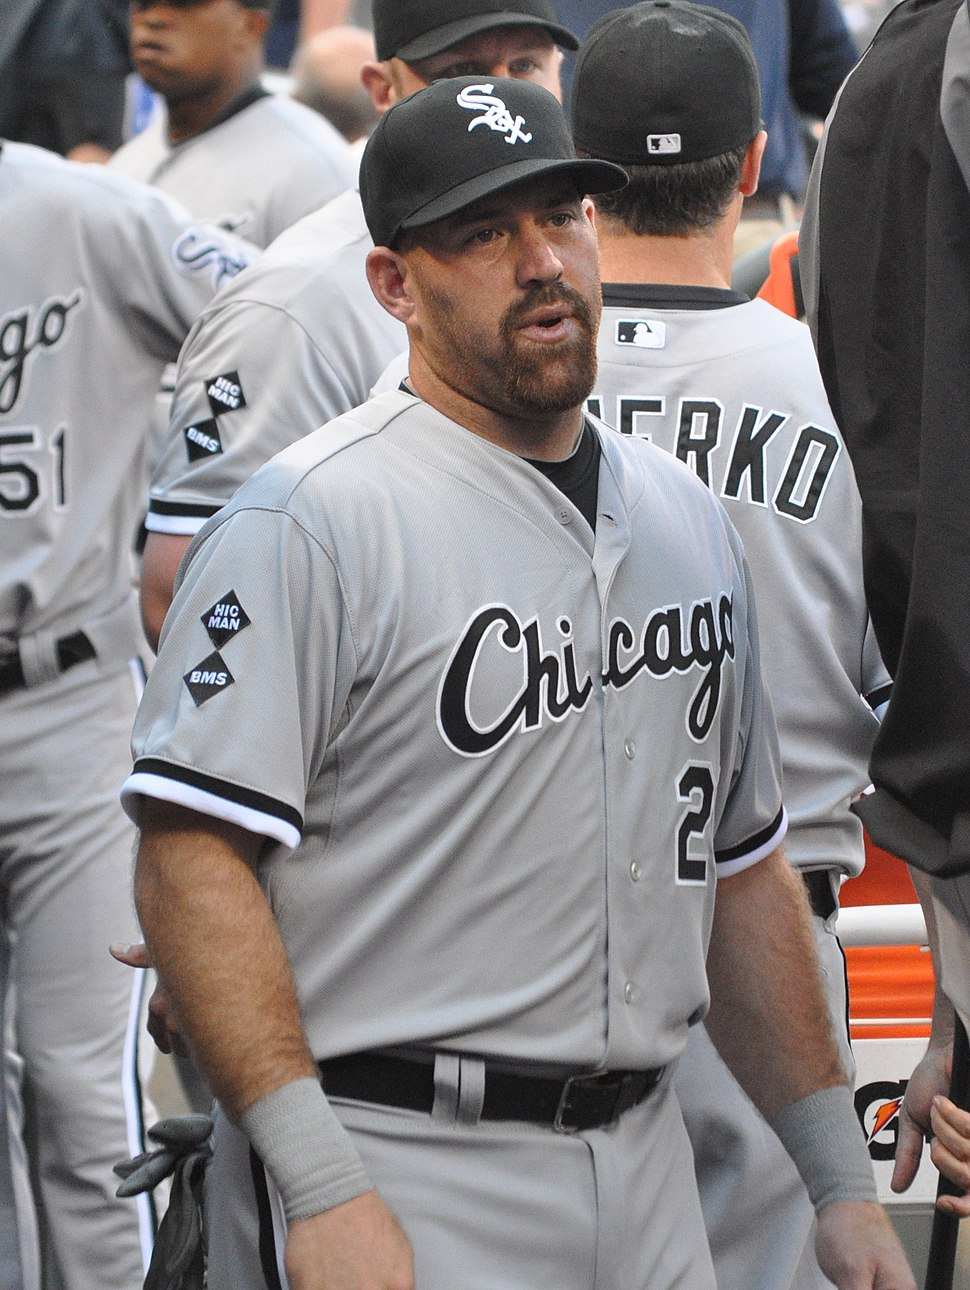 Kevin Youkilis on June 26, 2012